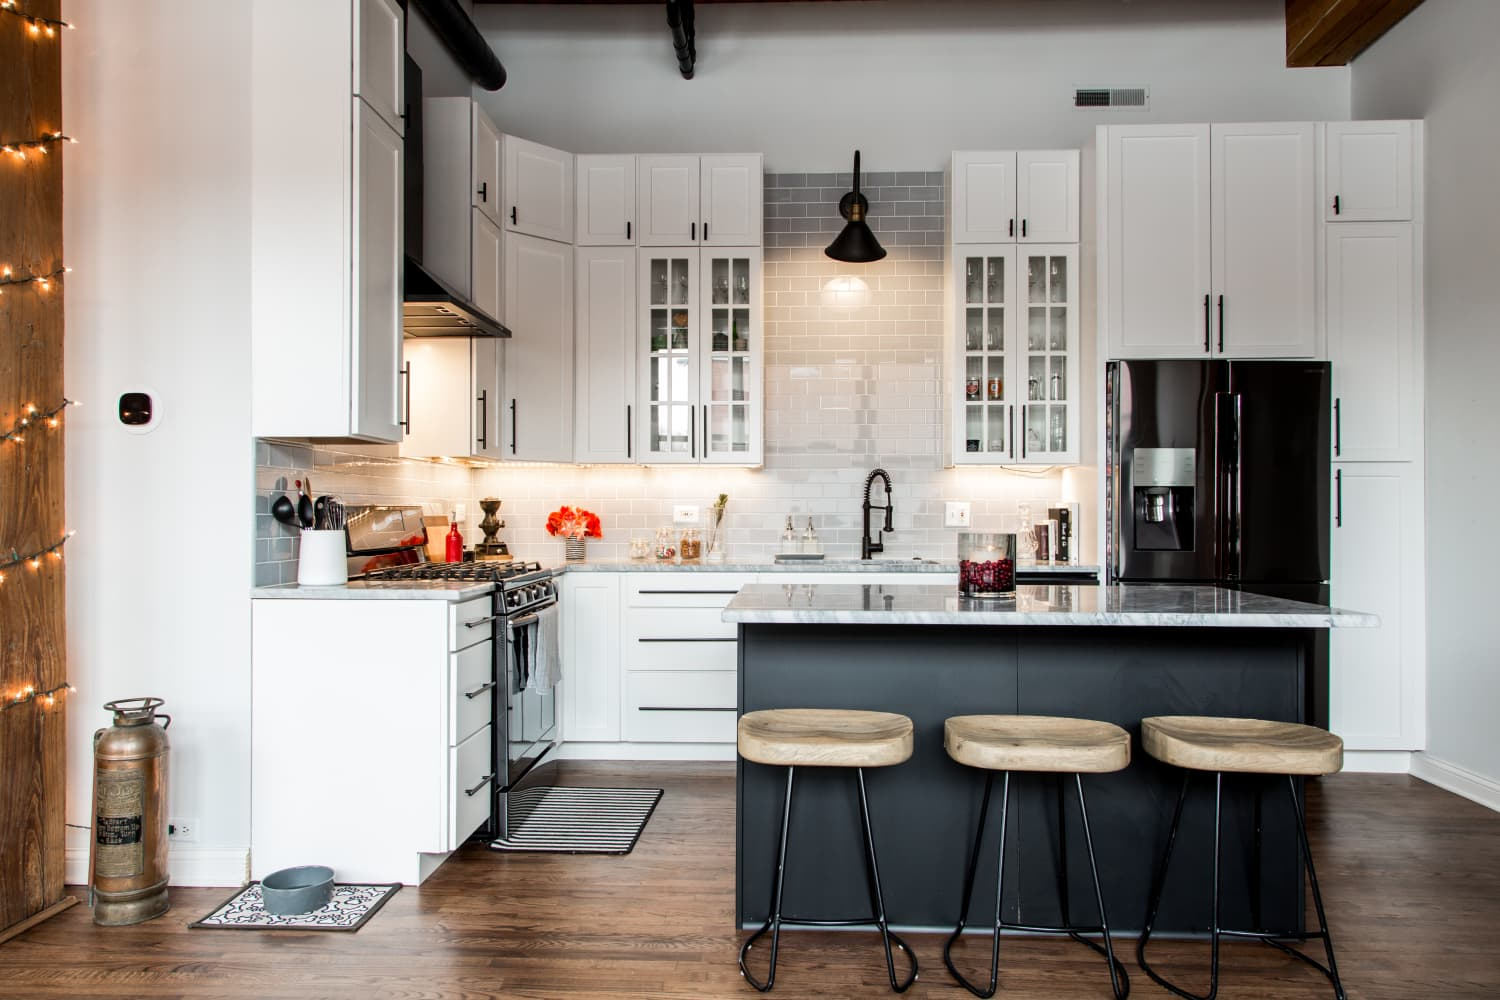 The Best Way to Add Kitchen Lighting For Under $35